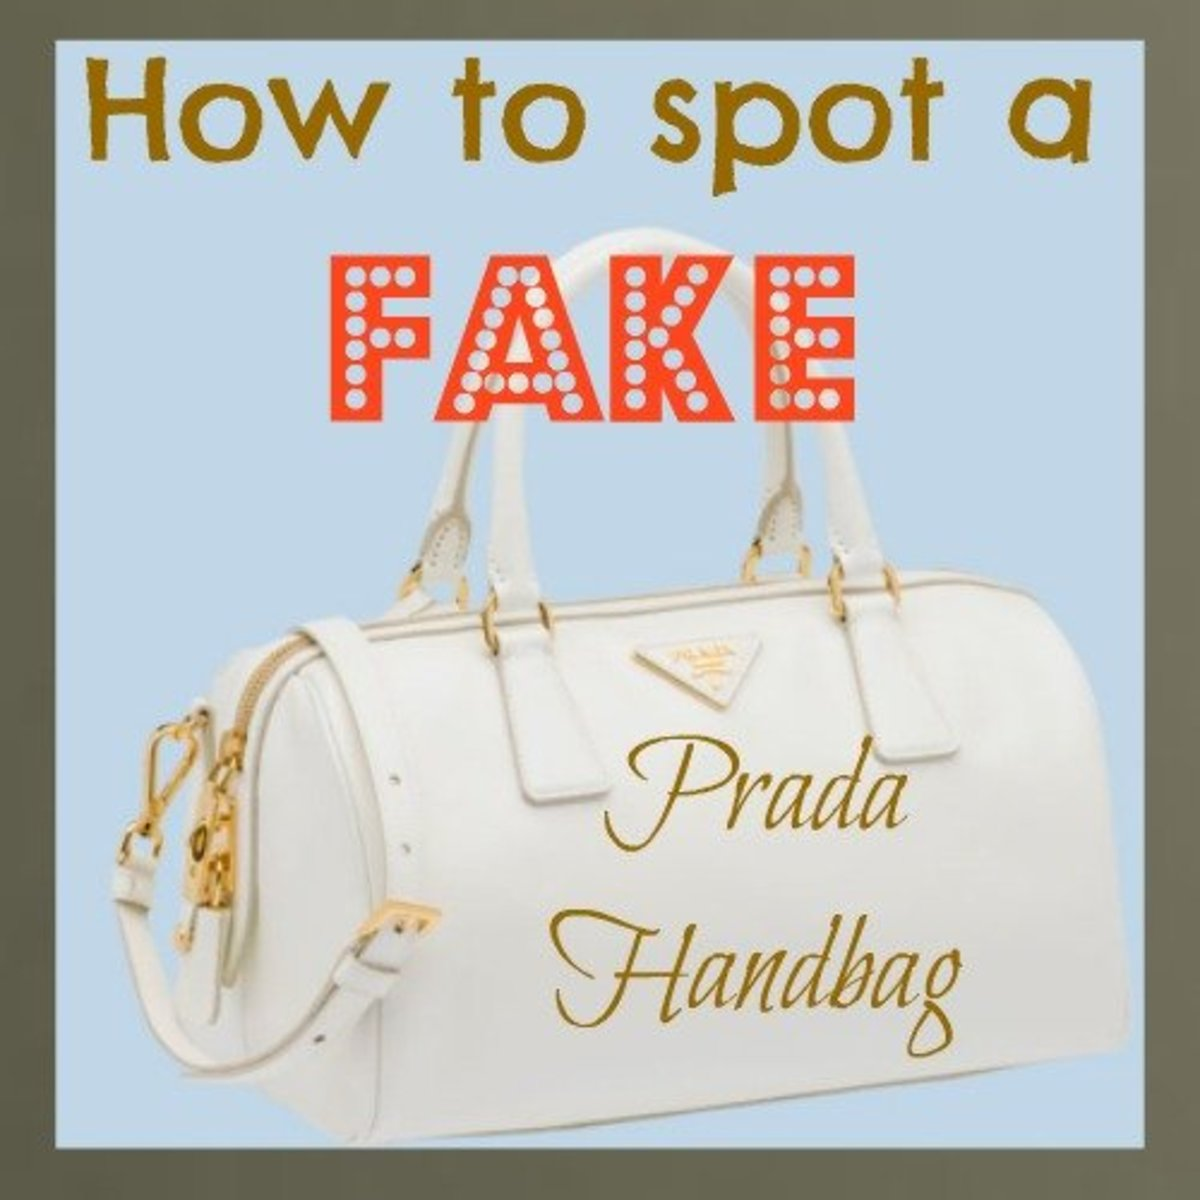 a to Prada fake Handbag How spot 8XnPw0Ok